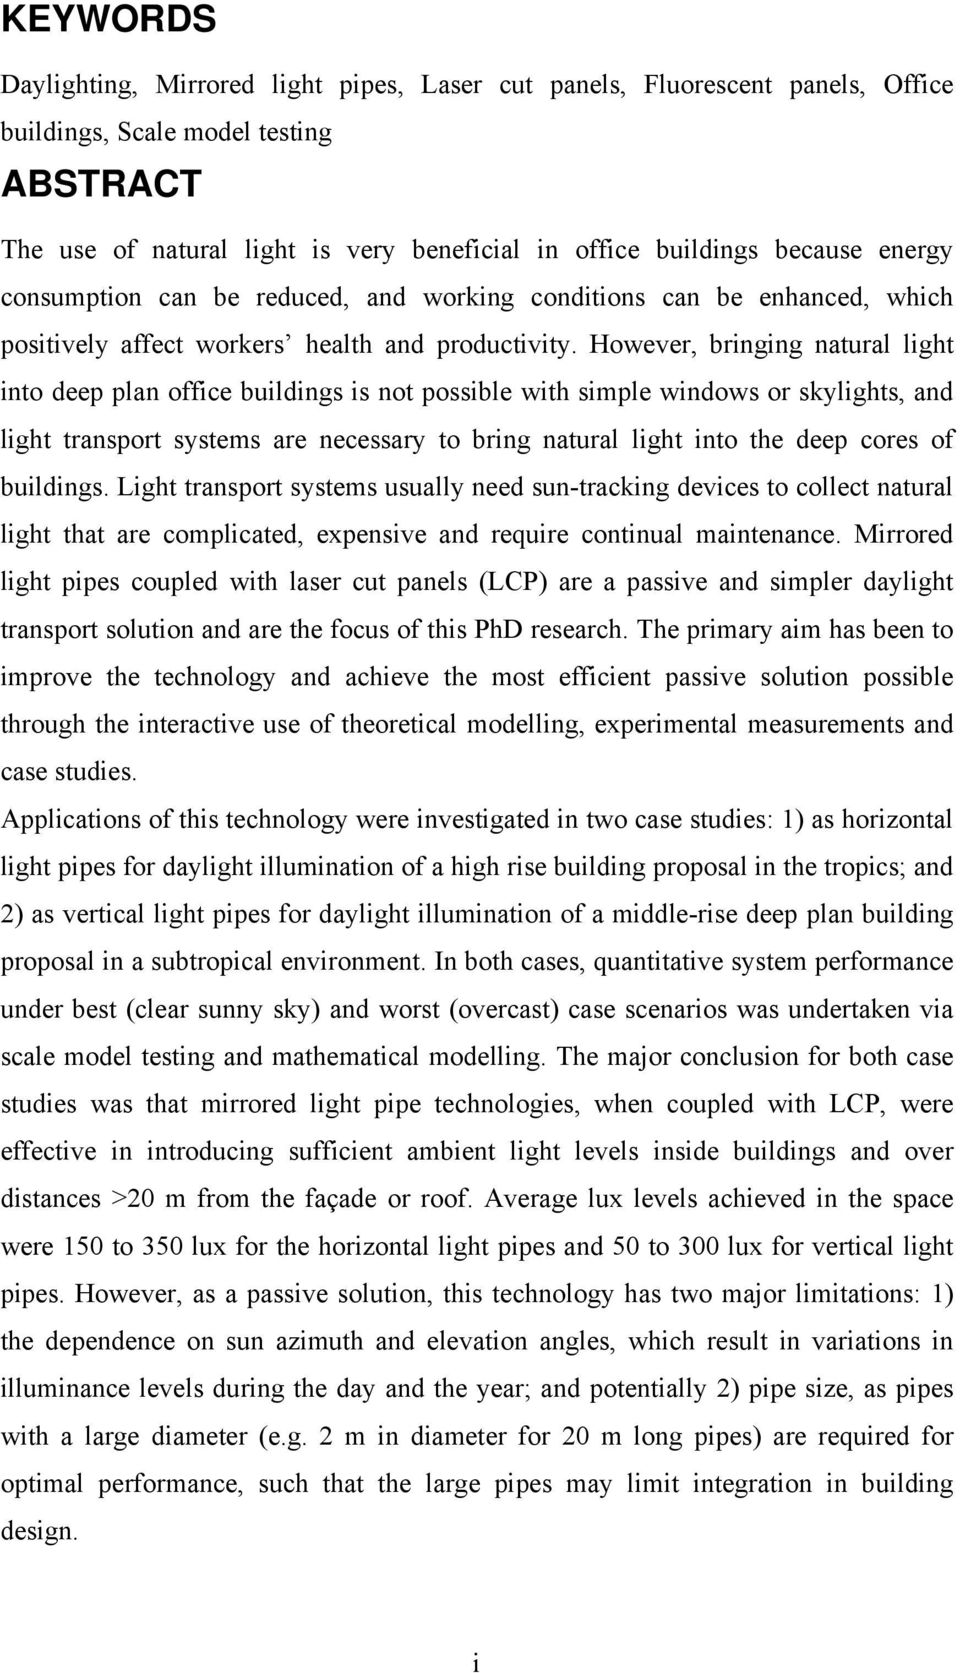 However, bringing natural light into deep plan office buildings is not possible with simple windows or skylights, and light transport systems are necessary to bring natural light into the deep cores